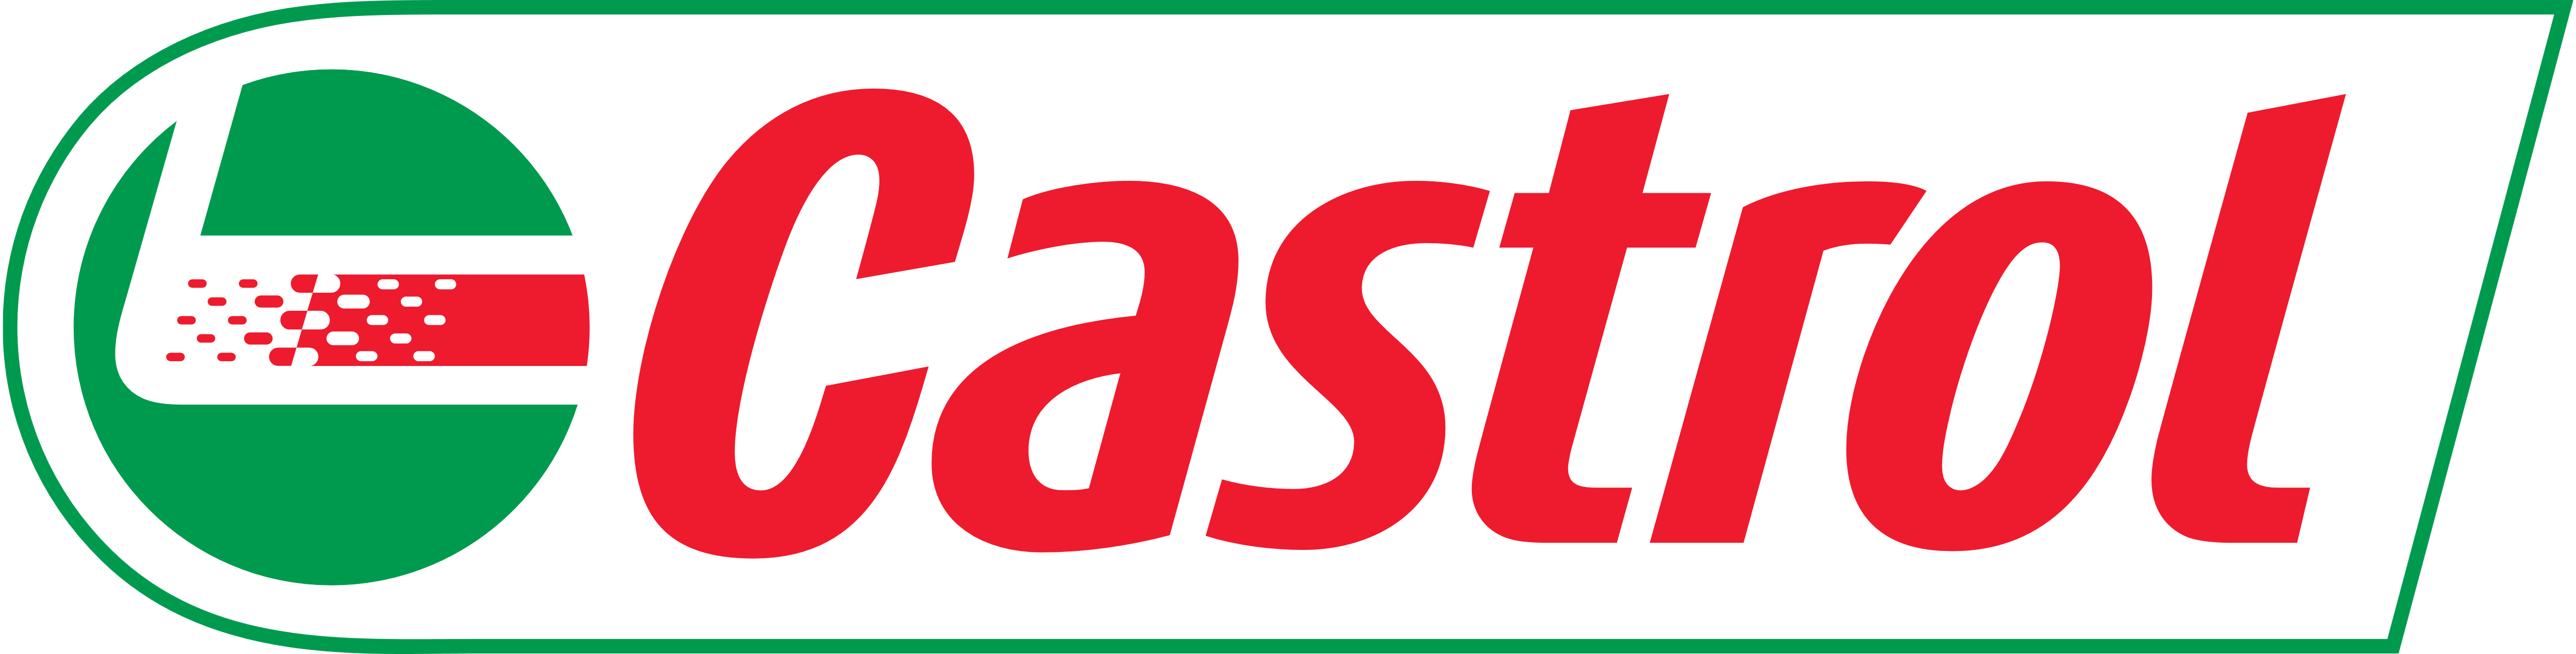 http://logos-download.com/wp-content/uploads/2016/02/Castrol_logo_2D_transparent.png